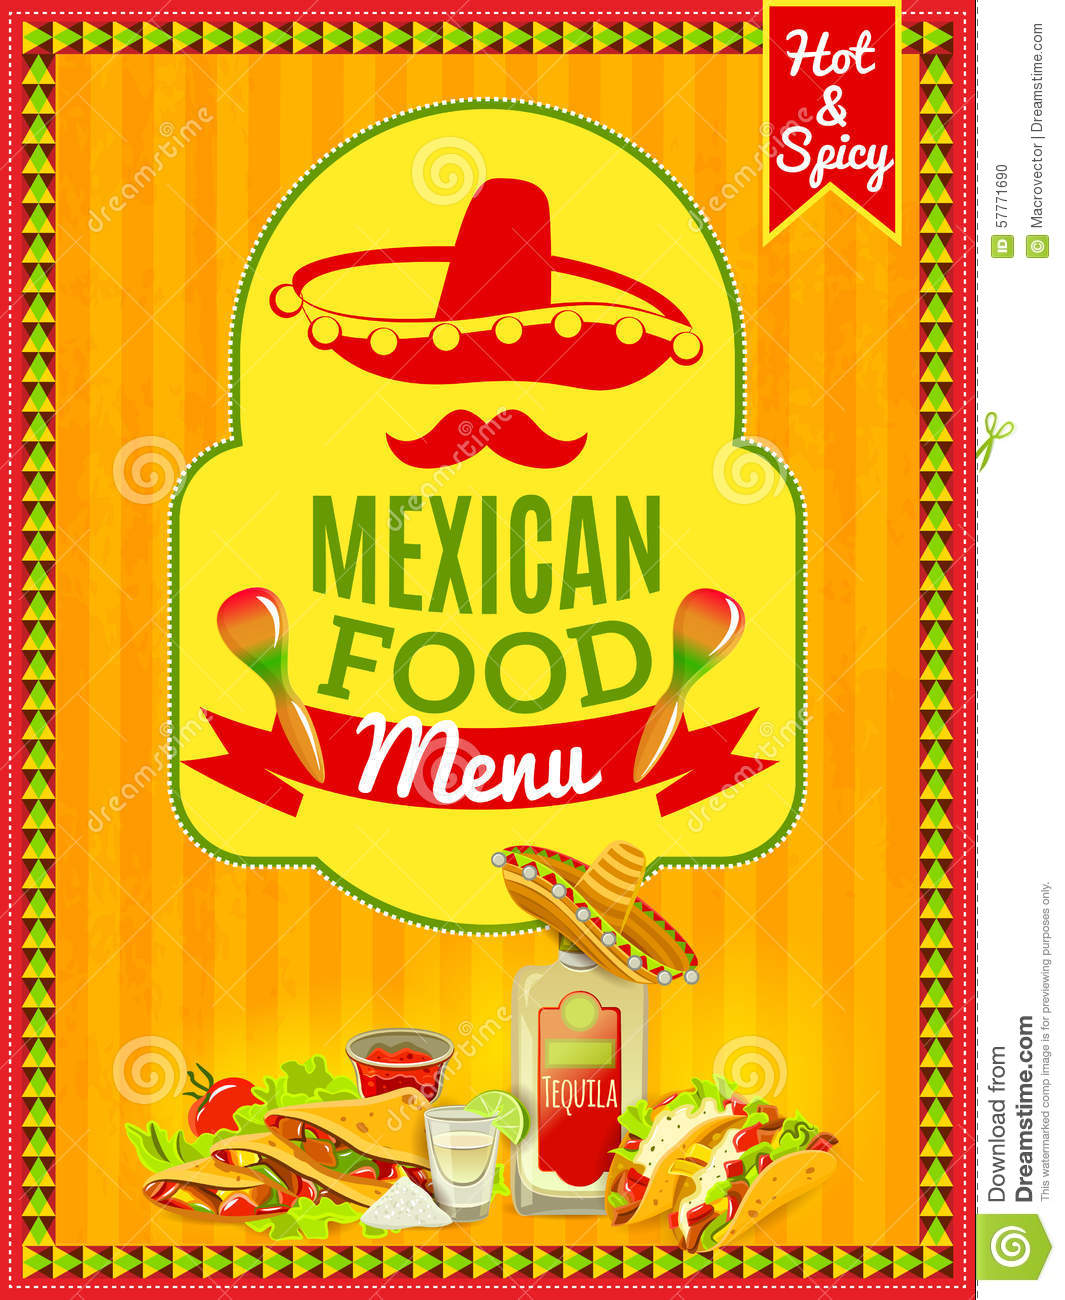 Mexican Party Invite with adorable invitation template